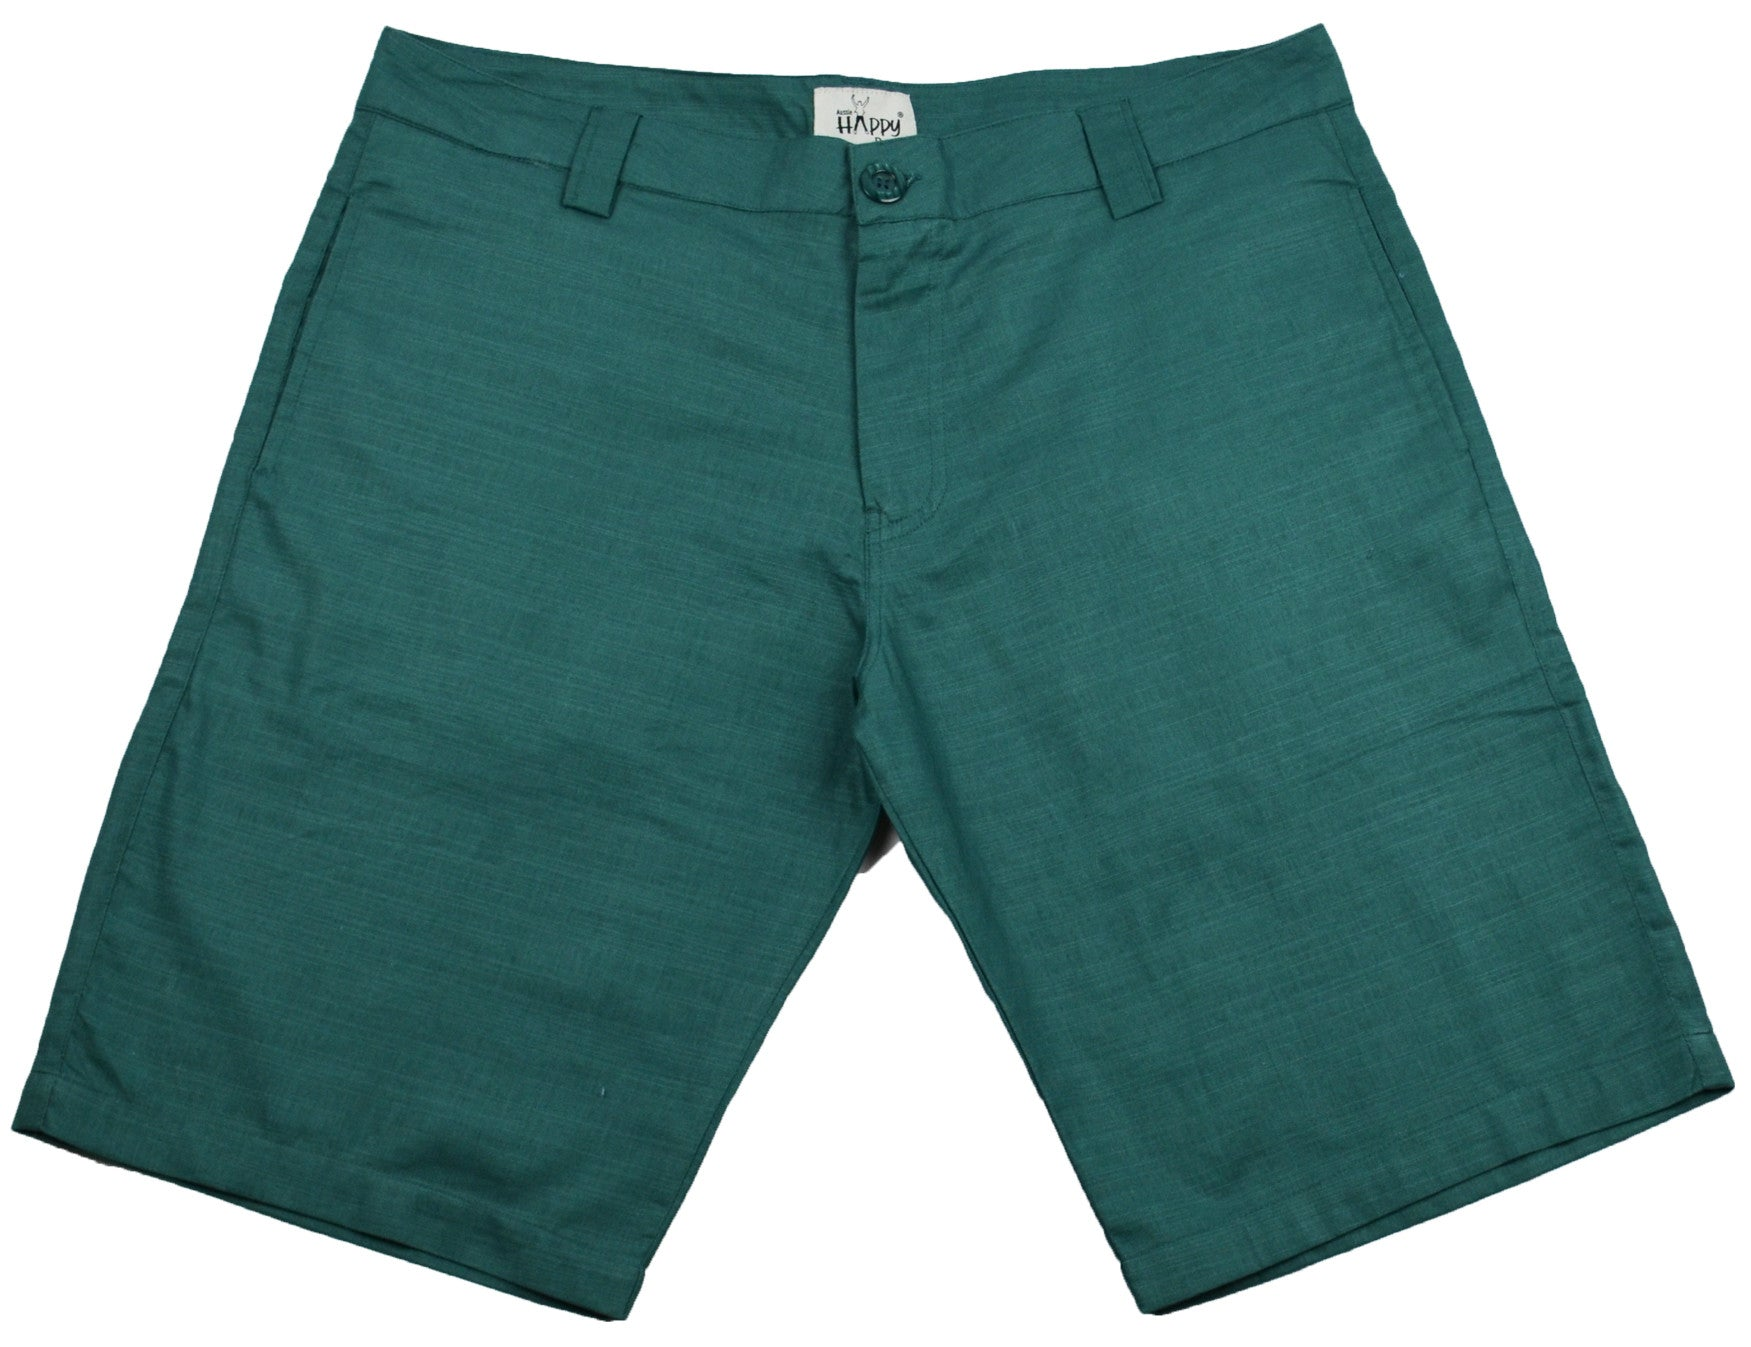 Green Cotton Shorts - Happy Pants - 1